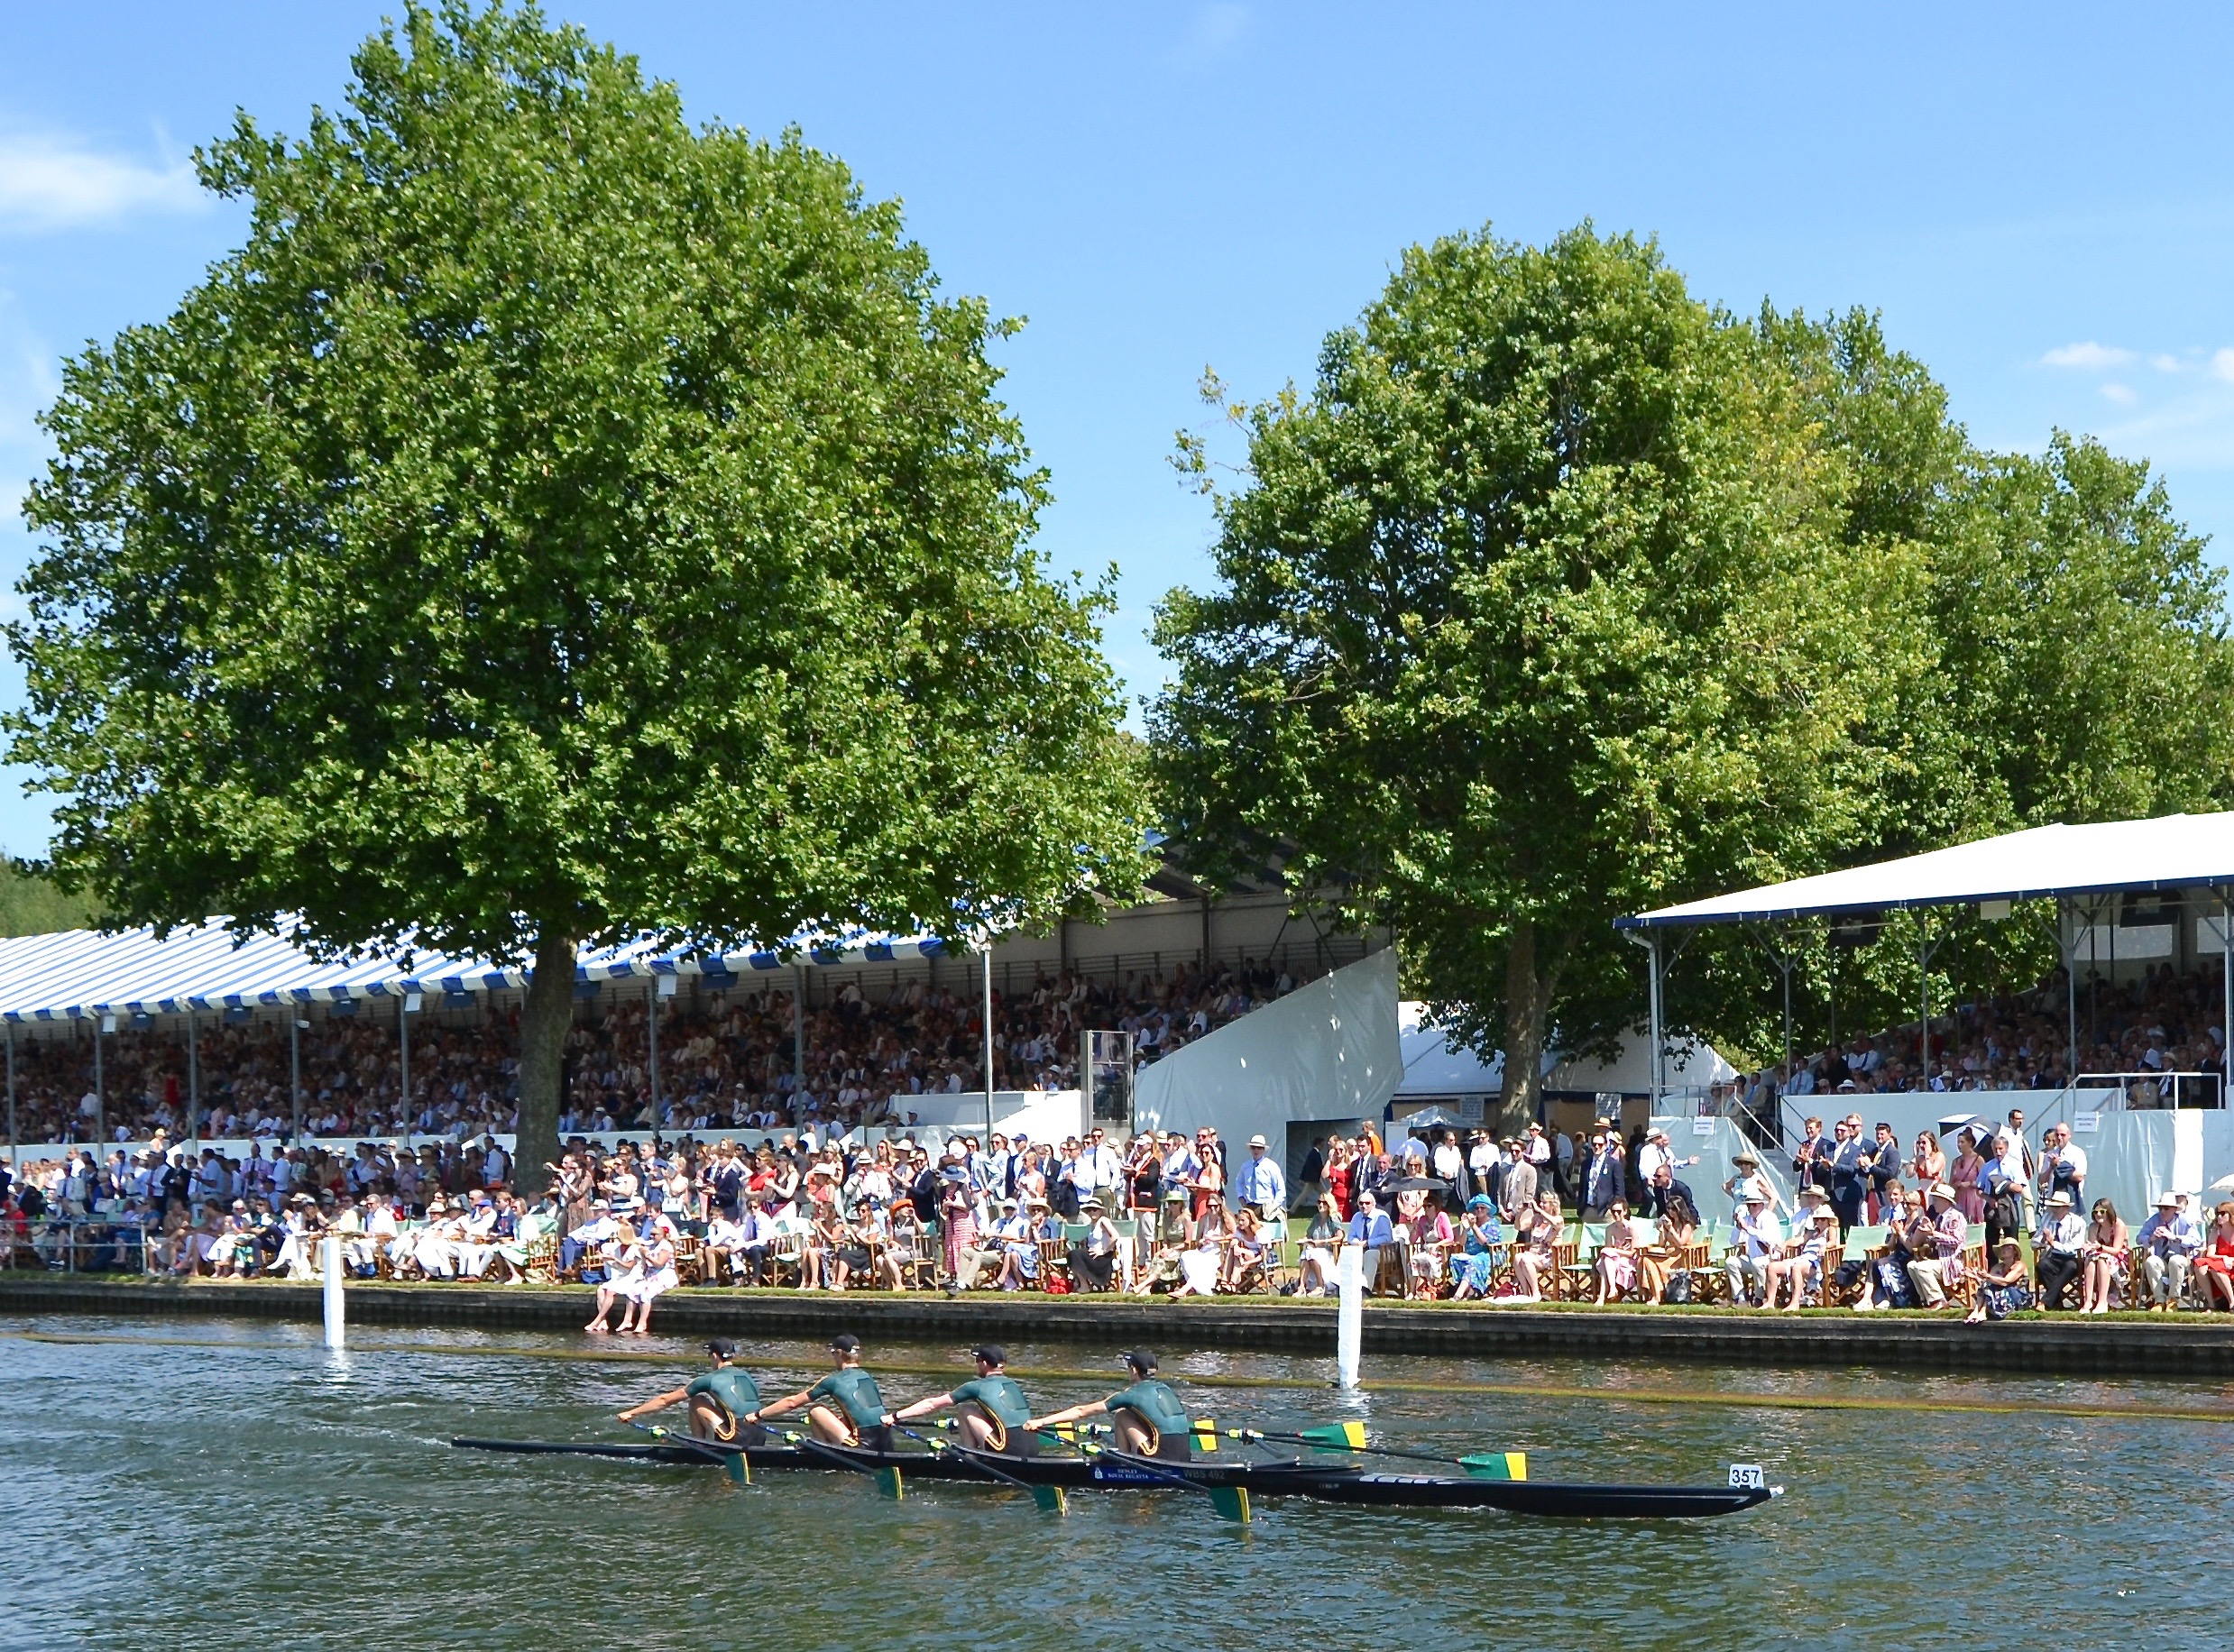 Henley Friday: Temperatures Rise, Records Fall | Hear The